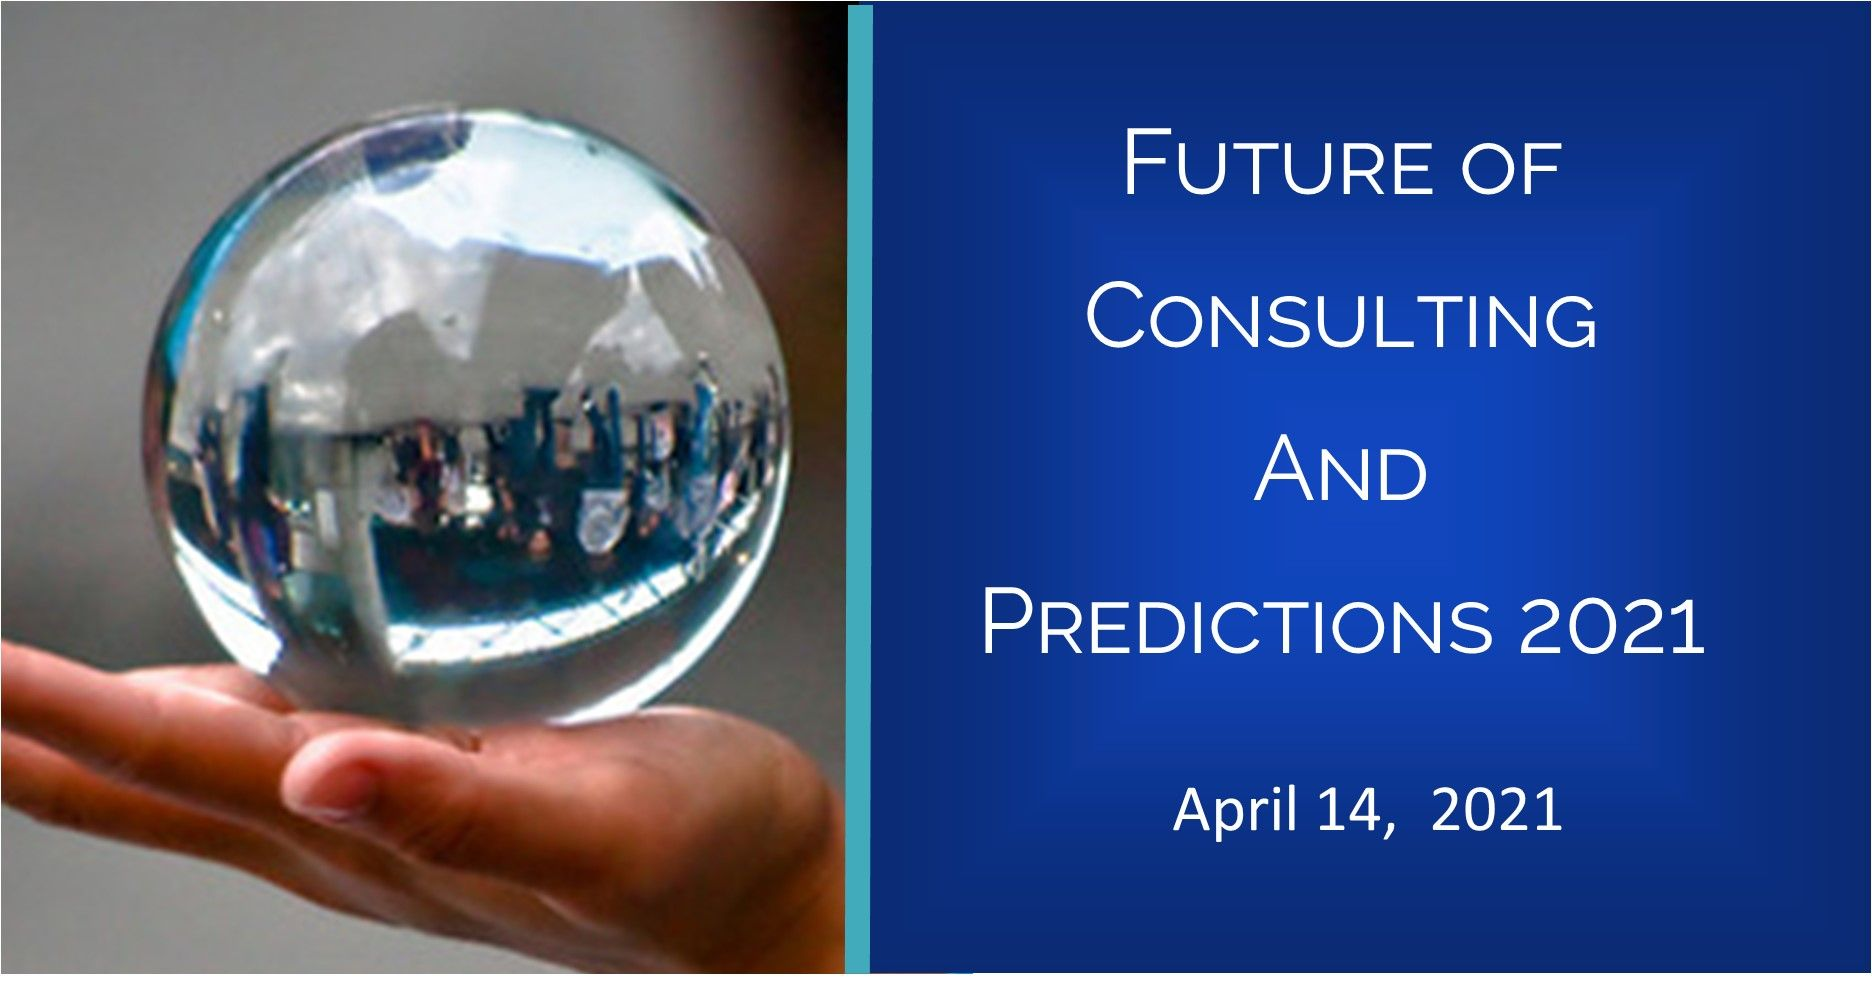 The Future of Consulting and Predictions for 2021